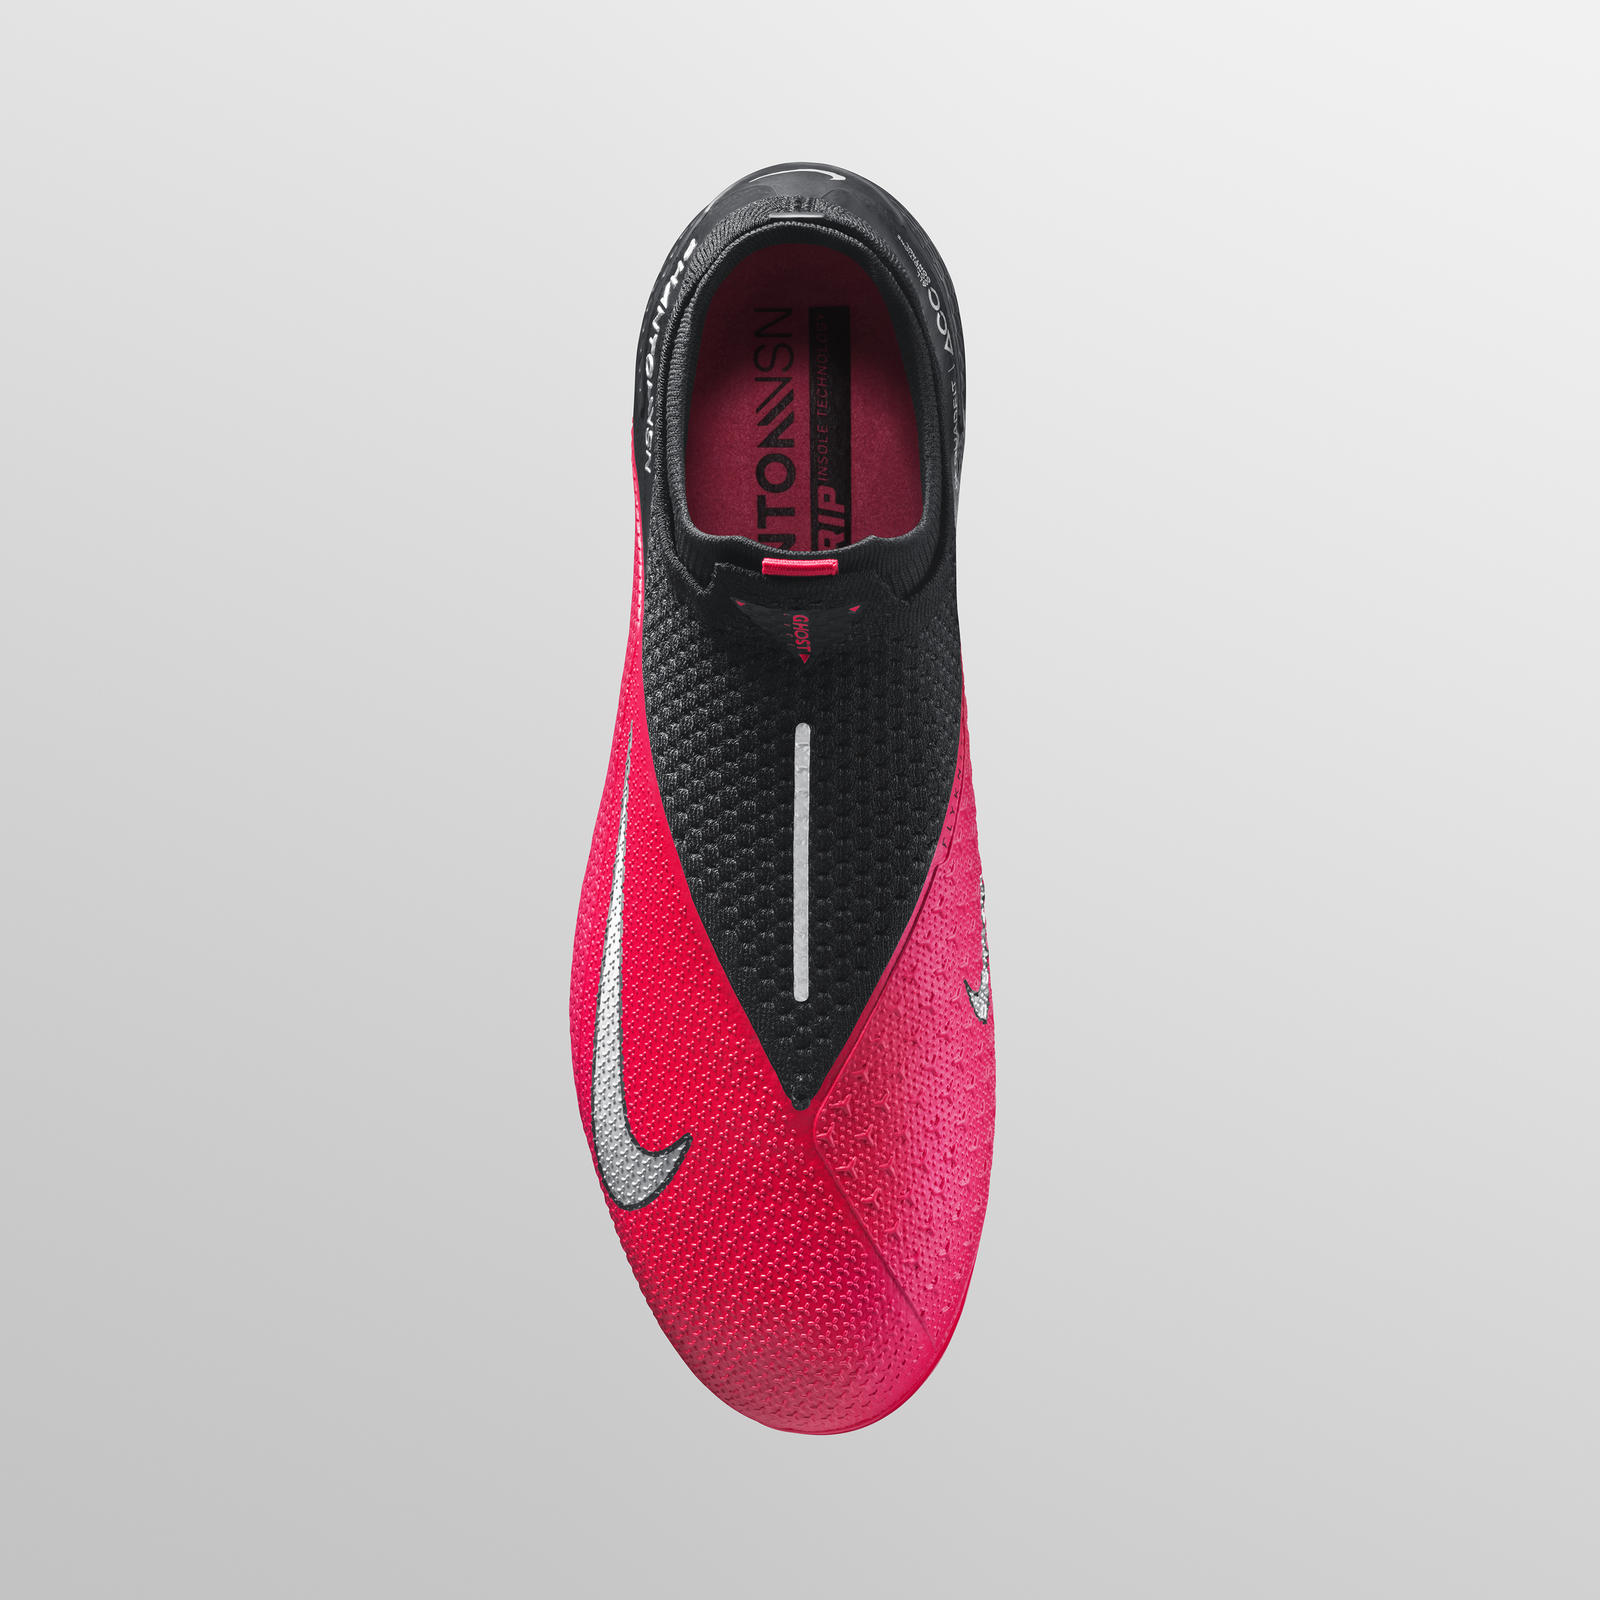 Nike Football PhantomVSN 2 Elite FG 1